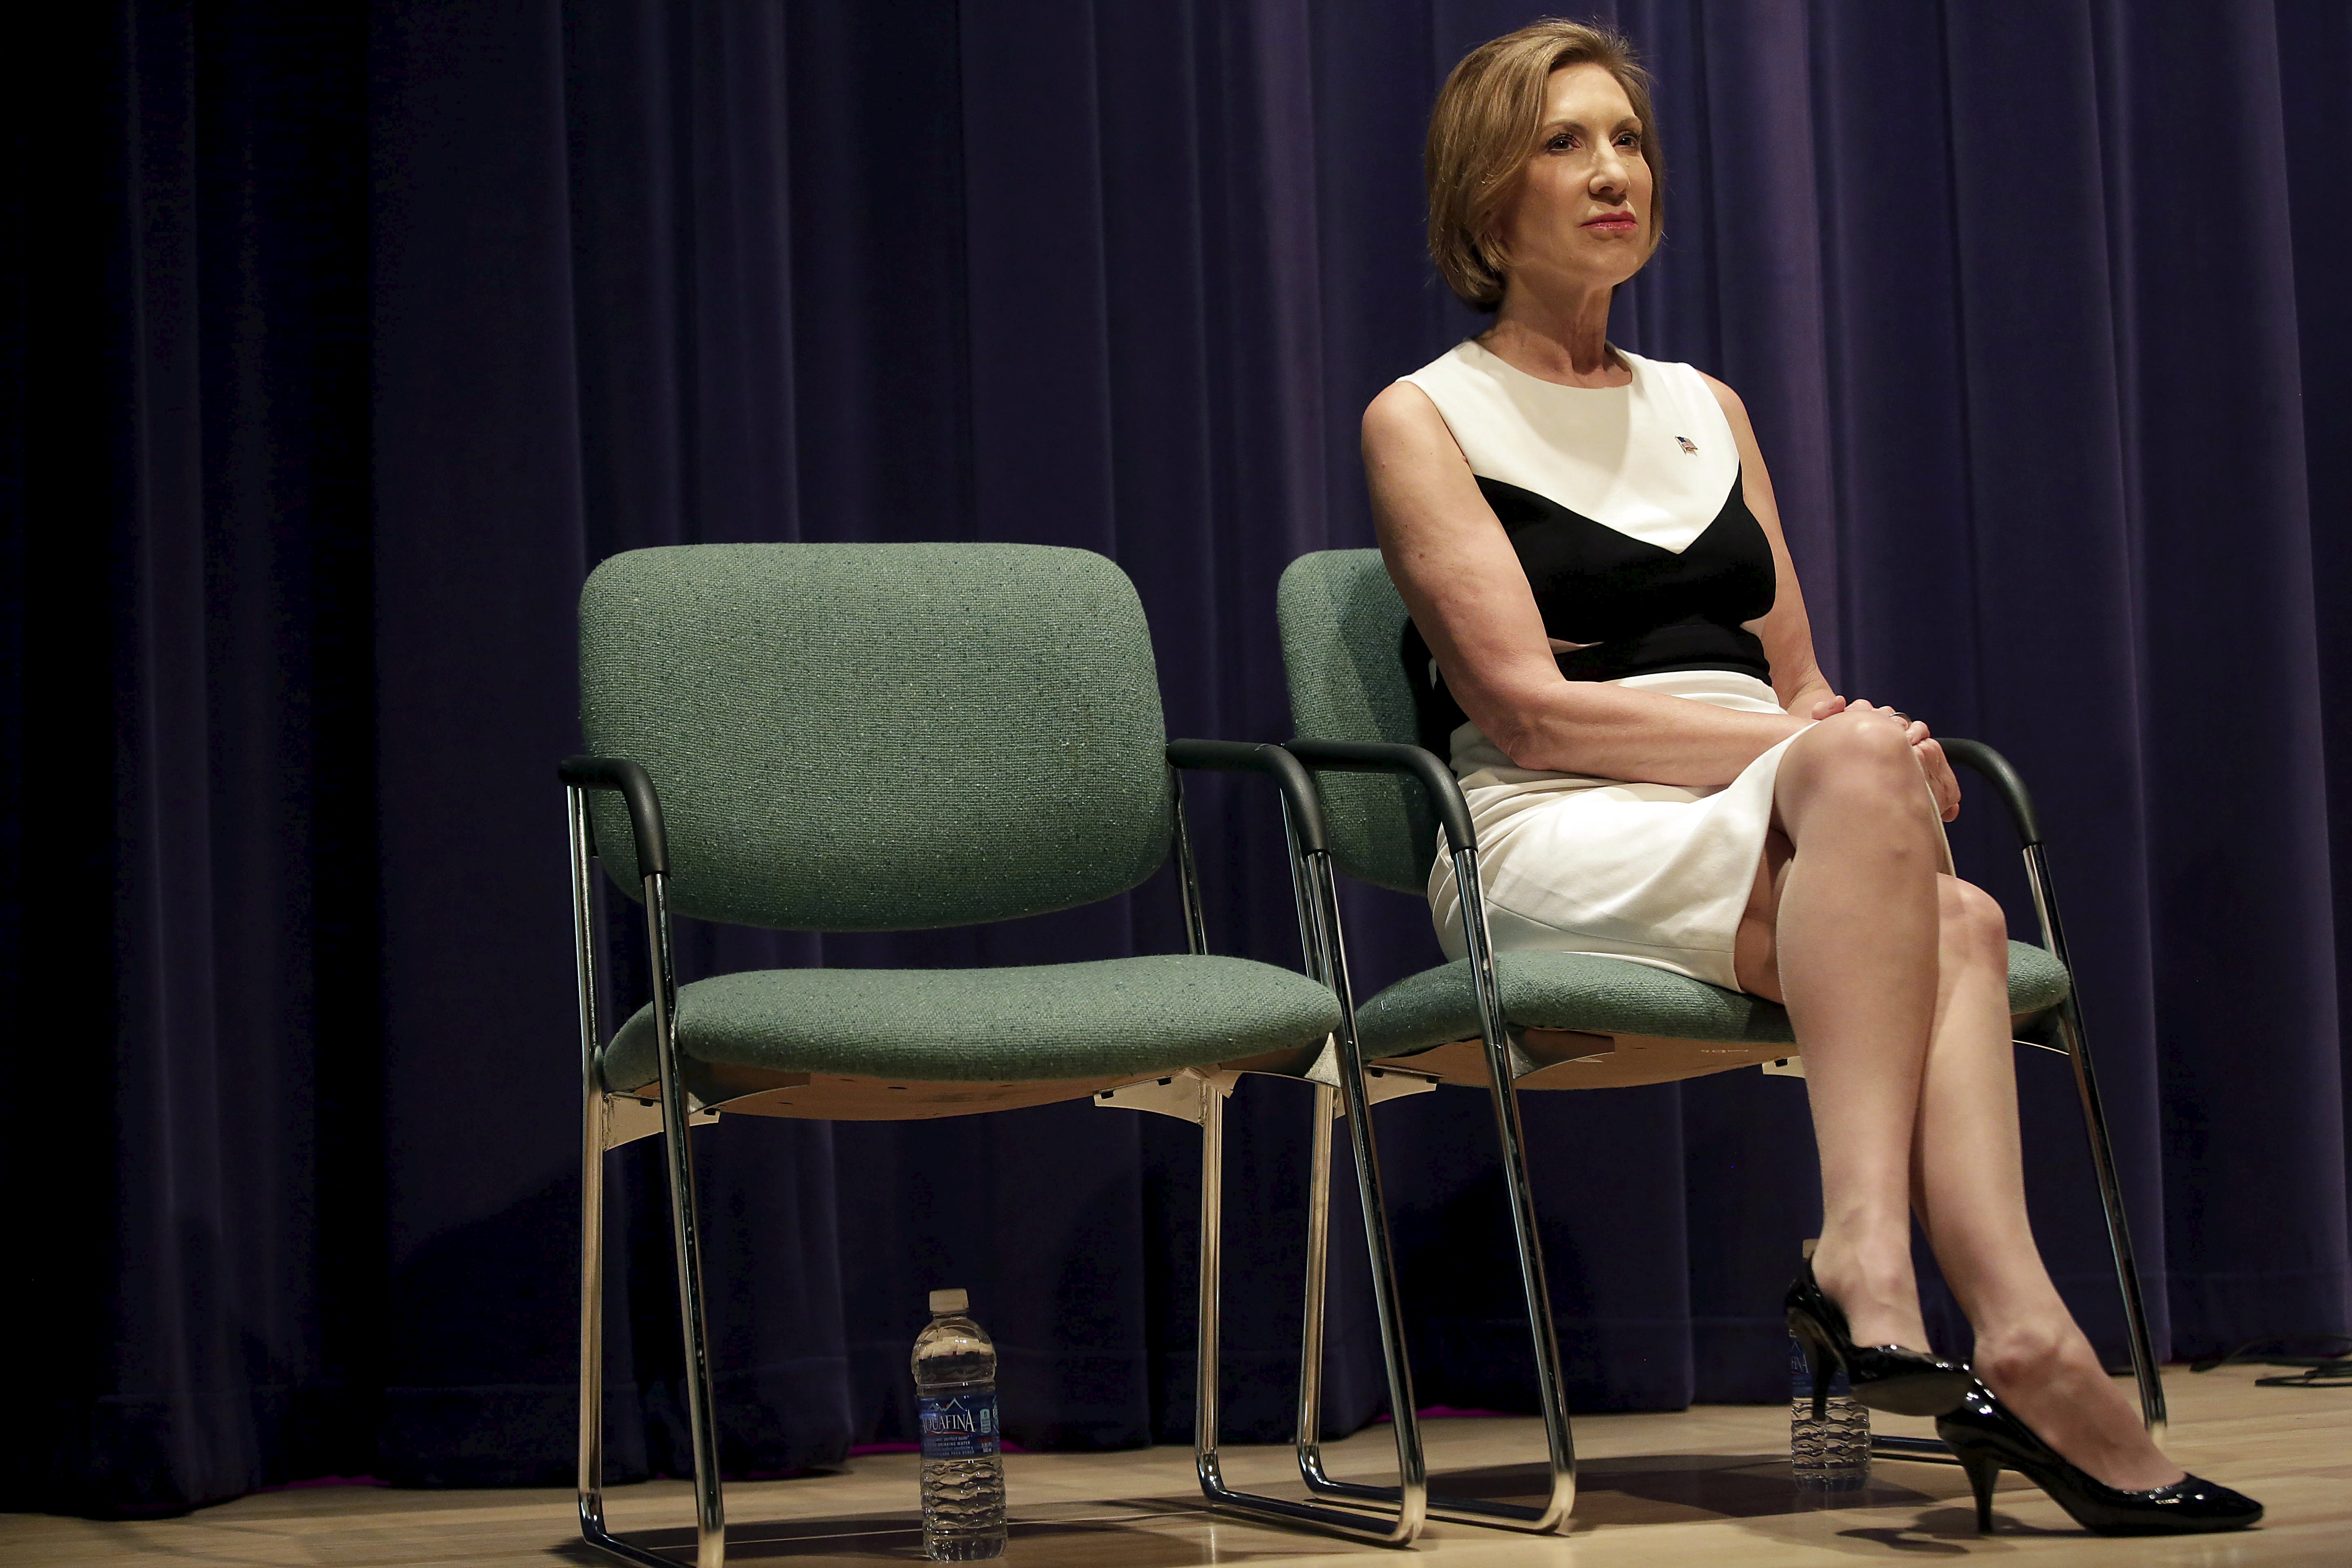 Carly Fiorina waits to be introduced before speaking during a campaign event at the Jewish Federation of Greater Des Moines in Waukee, Iowa on Aug. 16, 2015.